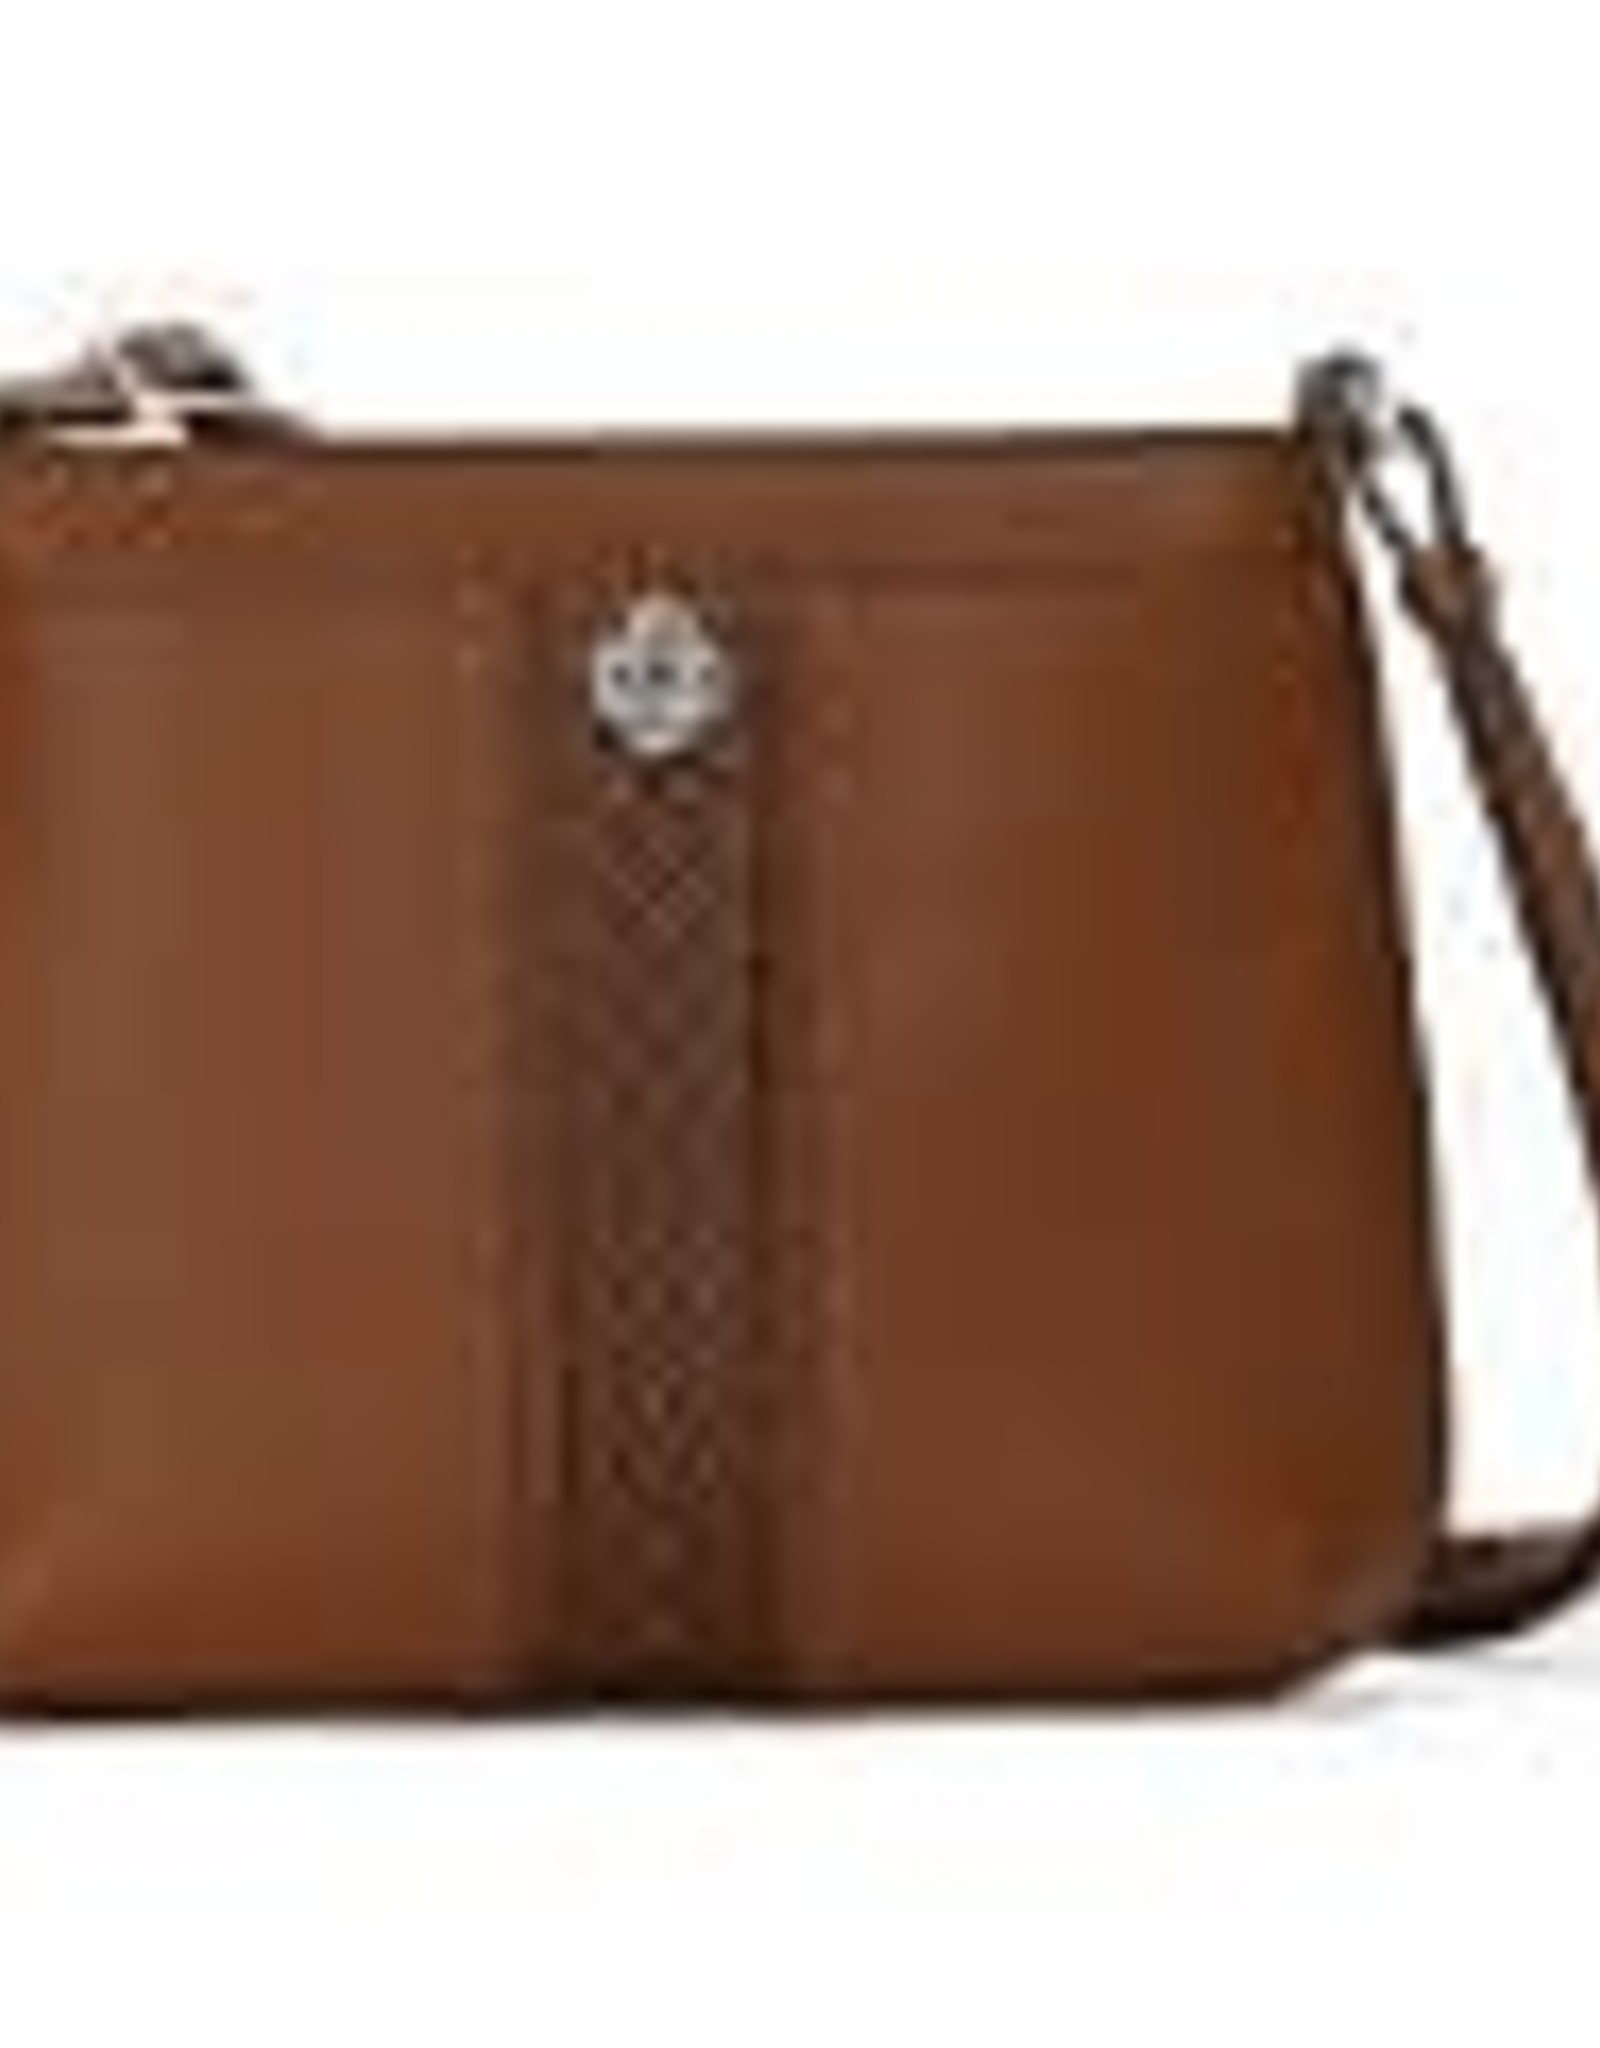 Brighton Brighton Handbag- Addy Convertible Crossbody